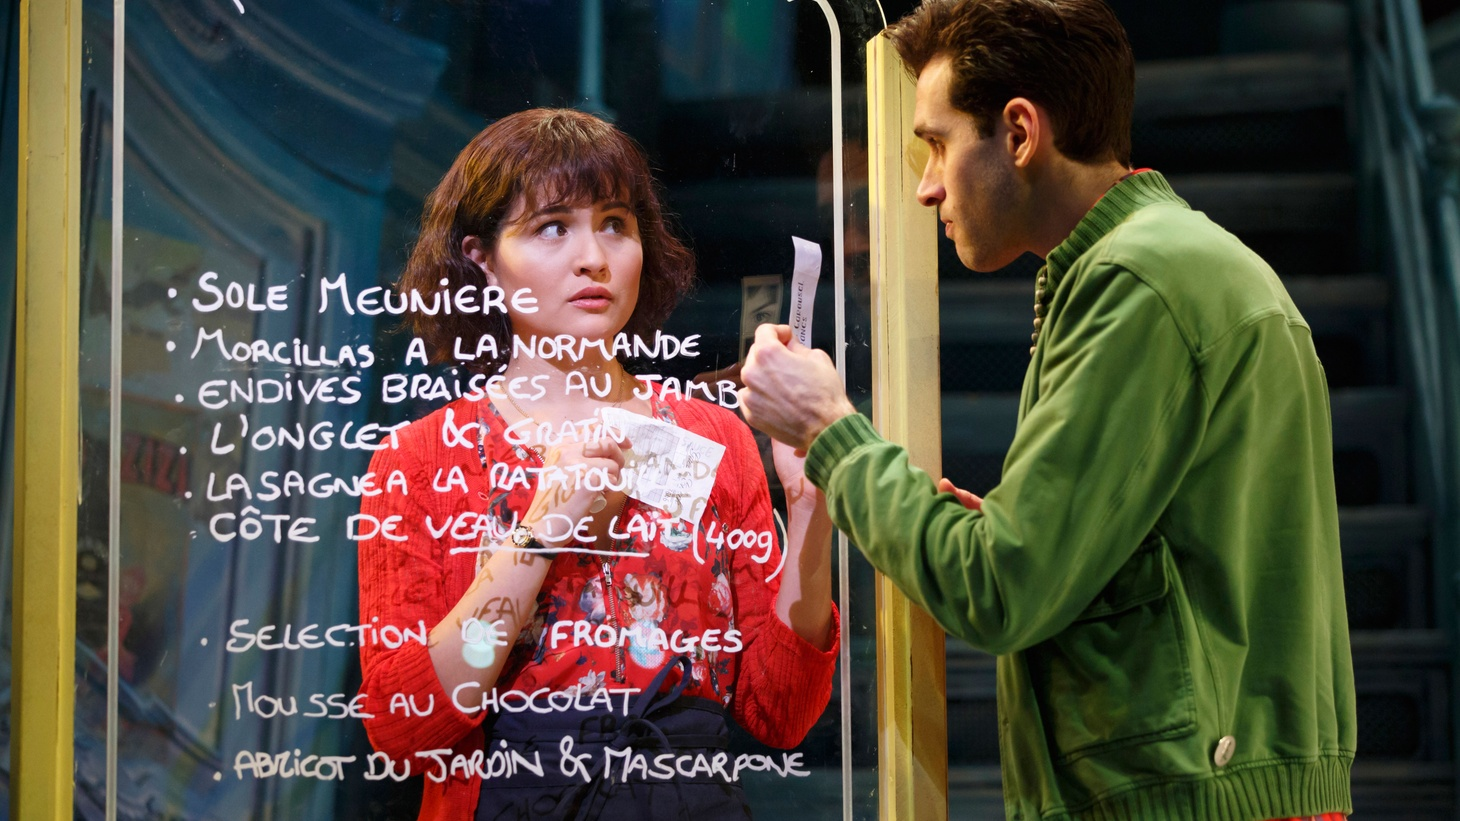 Remember that friend you had in college? She was kind of quirky, kind of drove you nuts but was really sweet. That friend is the Broadway bound musical Amelie: A New Musical playing at the Ahmanson Theater.